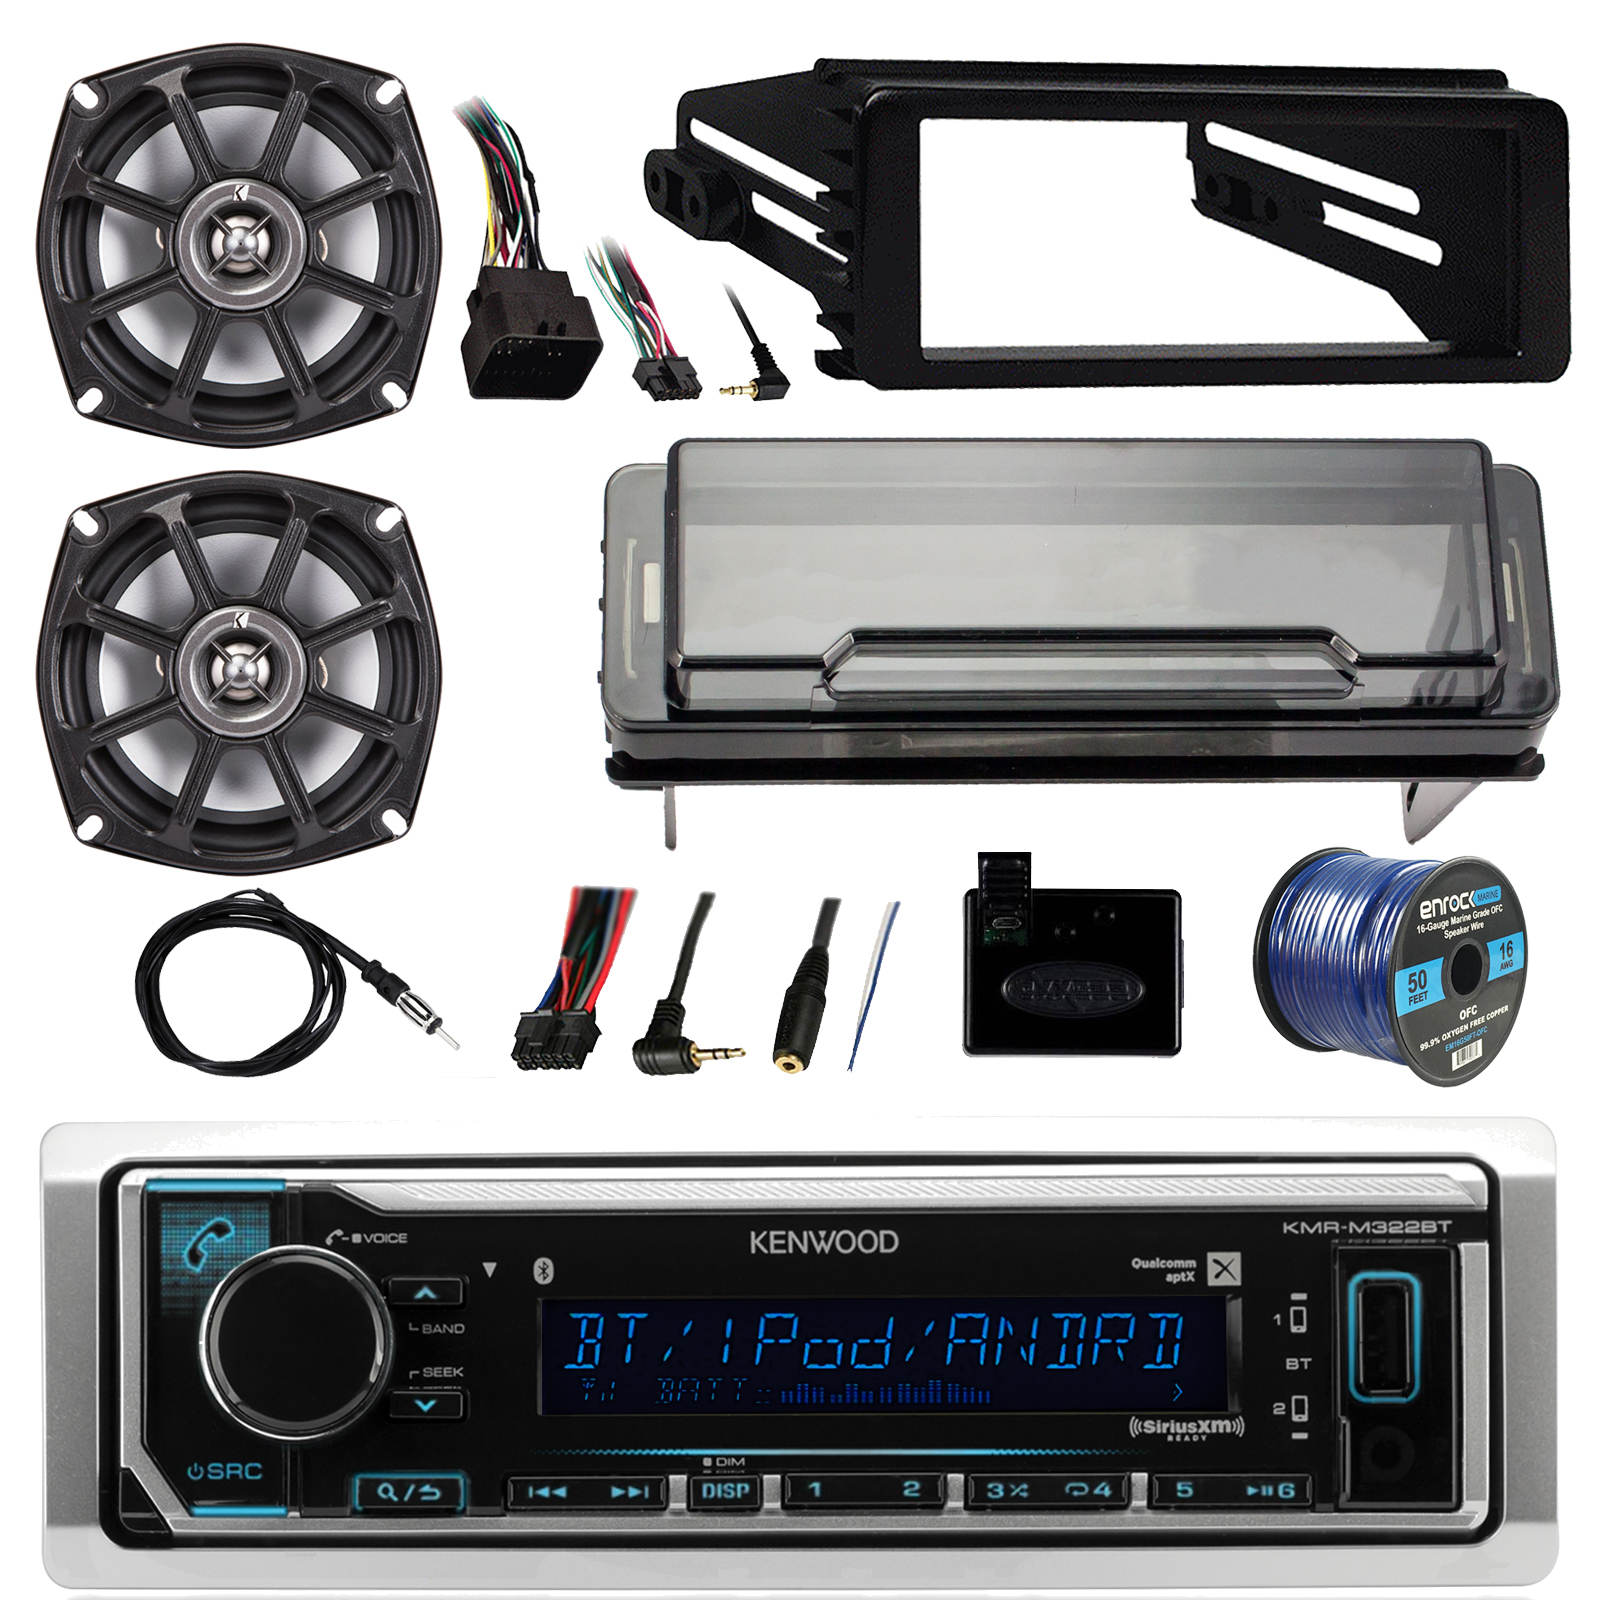 "1998-2013 Harley Davidson Bundle: Kenwood Marine Receiver w/ Bluetooth, 2X Kicker 10 PS5250 4-Ohm 5.25"" 2-way Boat Speakers, Radio Cover, Handlebar Control Interface, Dash Kit, Antenna, 50ft 16-G Wire"